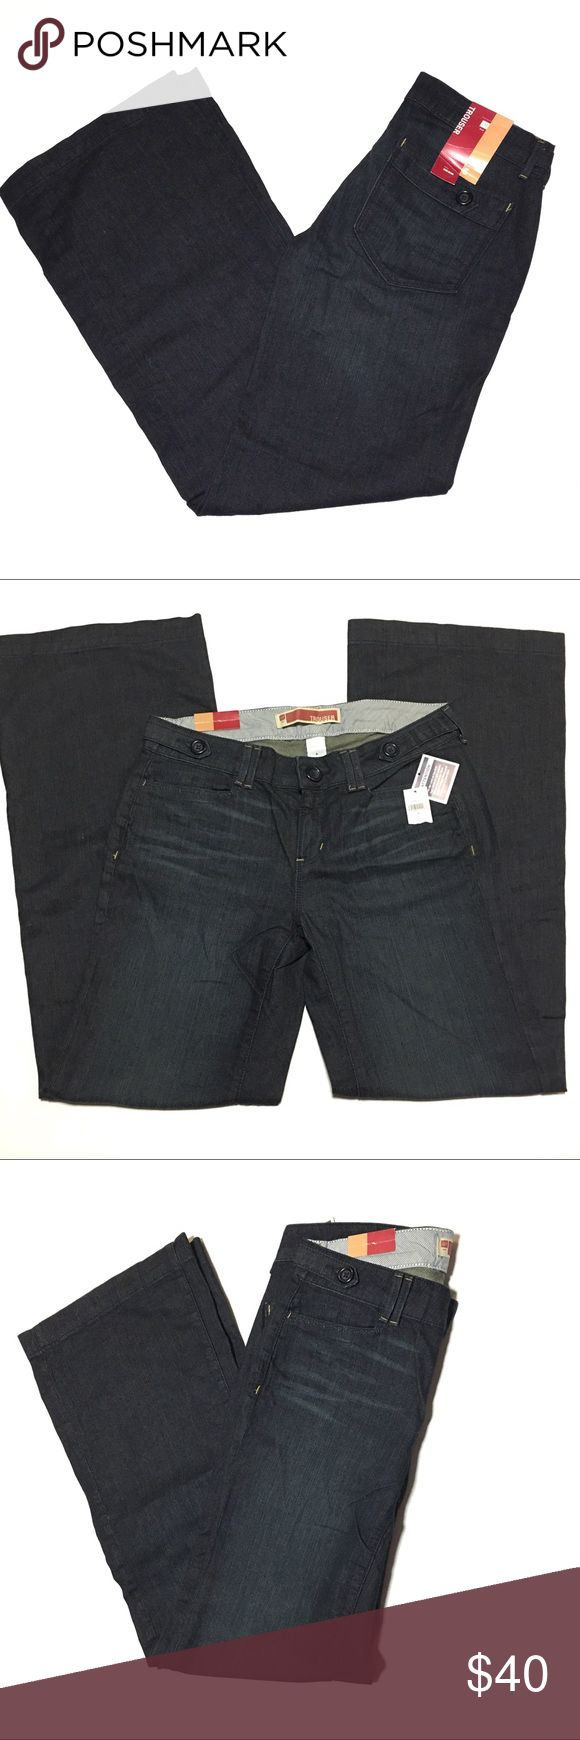 """Gap Trouser Cut Dark Wash Jeans   - Size 6 - NWT Gap Trouser Cut Jeans   • Dark wash • Slash front pockets and button tab details on back pockets • Zip fly with button waist and button tab details • Mid Rise • Style:  659991 • 98% Cotton  2% Spandex • Size 6 • Approximate Measurements Flat Across                            Waist Flat – 15.5""""           Hips Flat – 19""""           Thighs Flat – 9.75""""           Leg Opening Flat – 11""""           Front Rise – 8.5""""           Back Rise – 13.75""""…"""